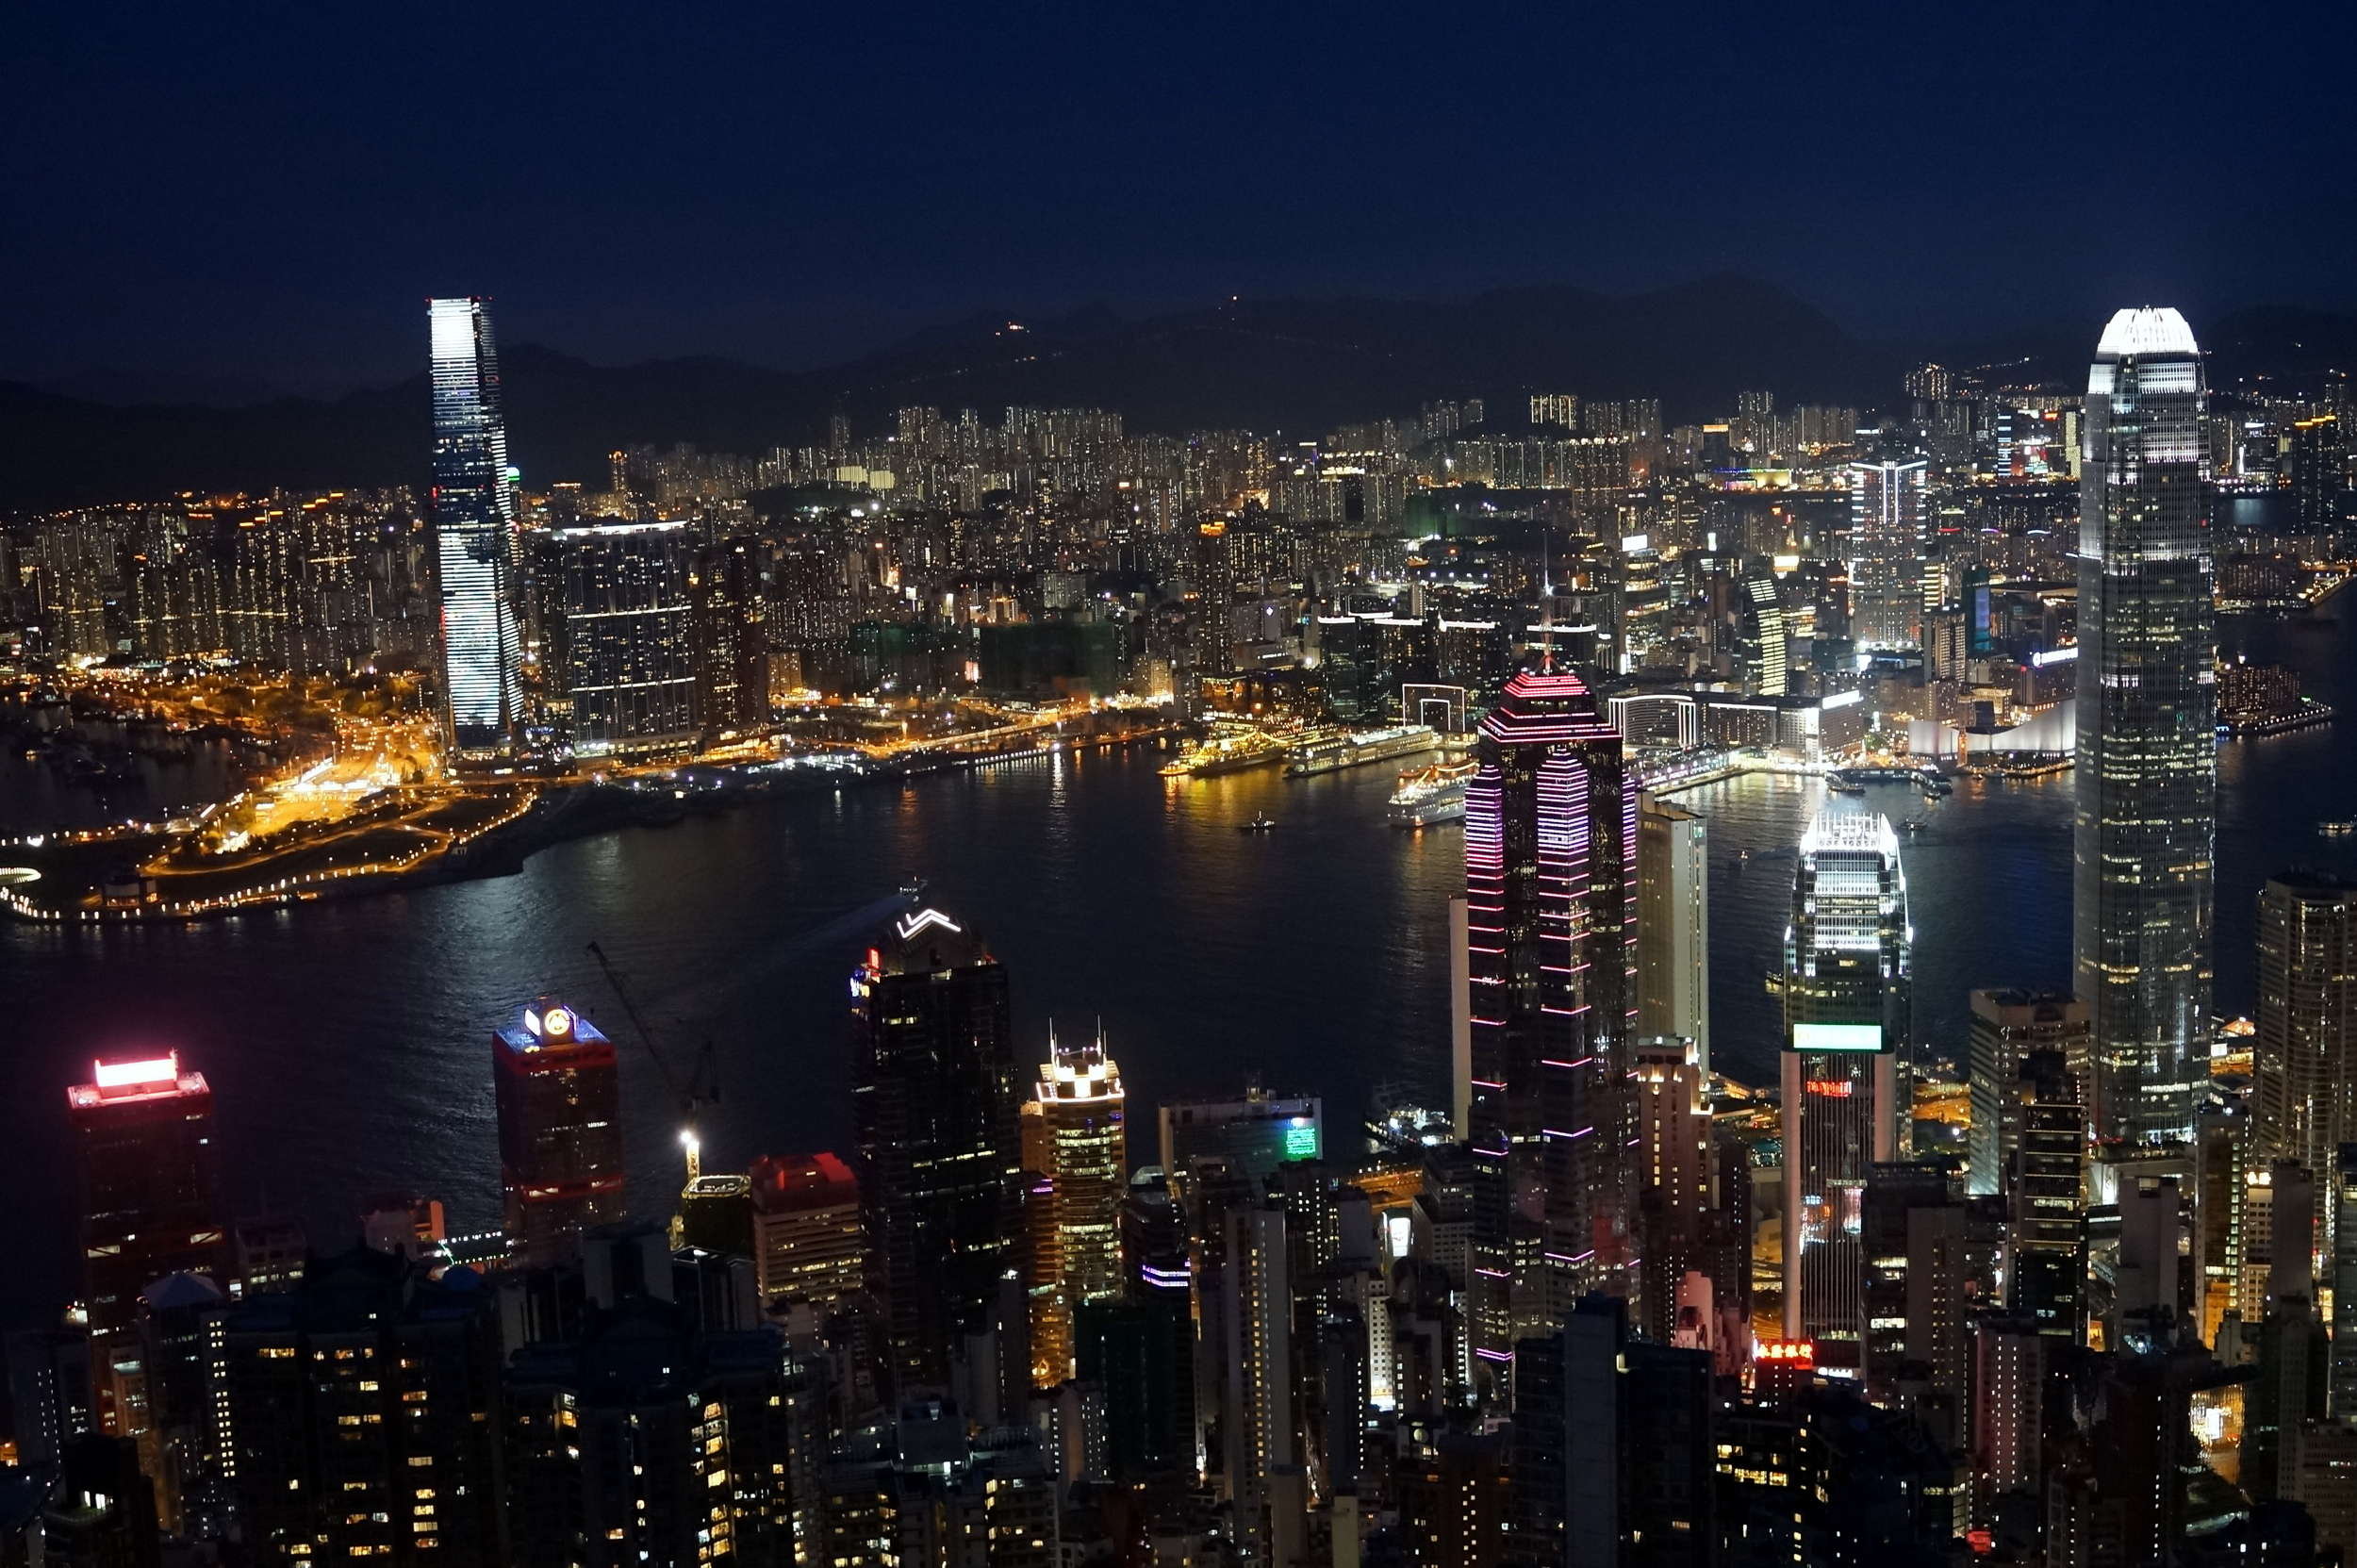 I took about 50 images (handheld no tripod) to get 2 stunning images of the night view of Hong Kong from my spot at the Peak - it has to be the most fabulous city view in the world.